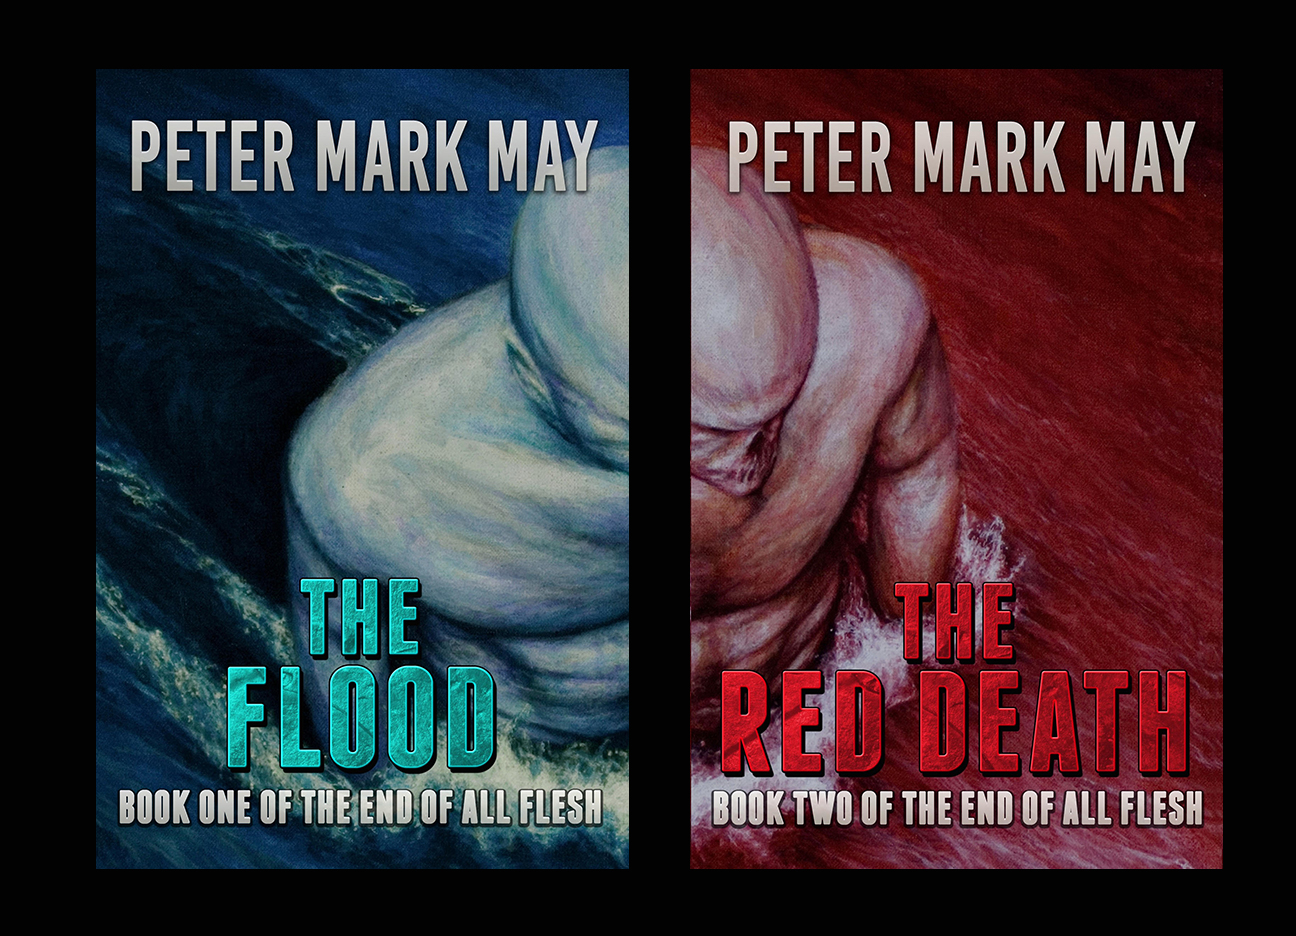 Two new book covers